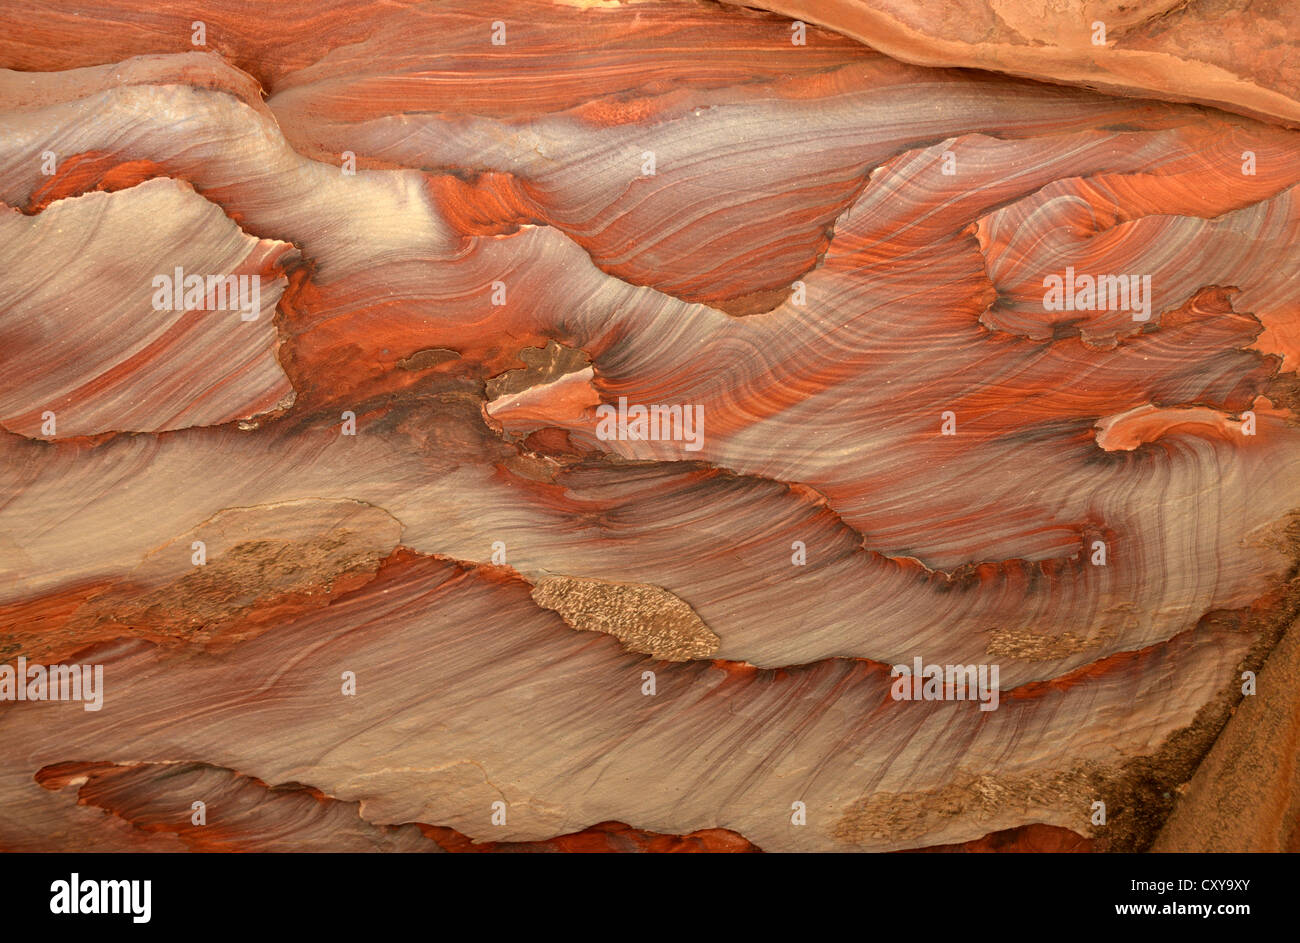 Polished stone ceiling in a rock carved cave, Petra, Jordan - Stock Image